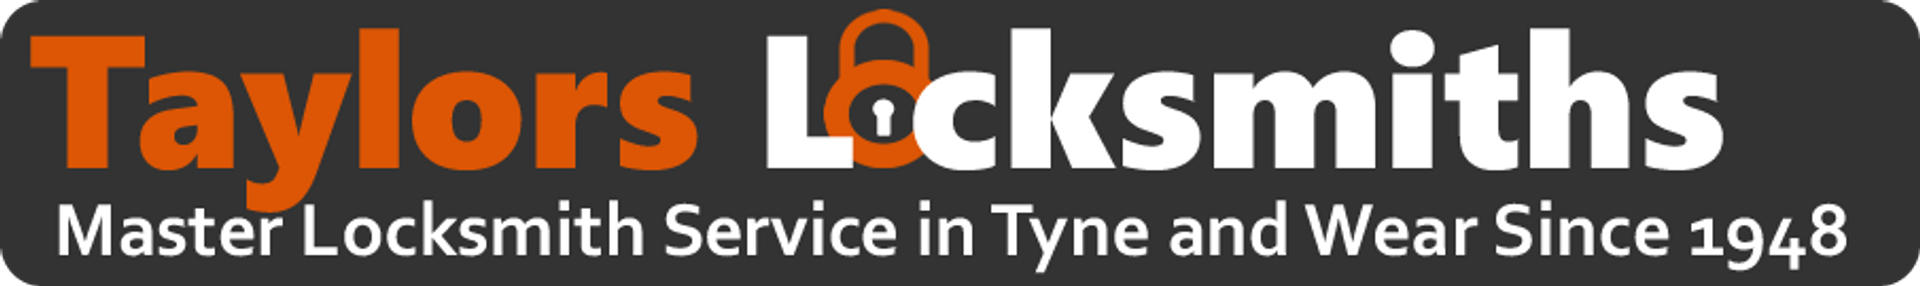 Taylors Locksmiths of Gateshead Tyne and Wear